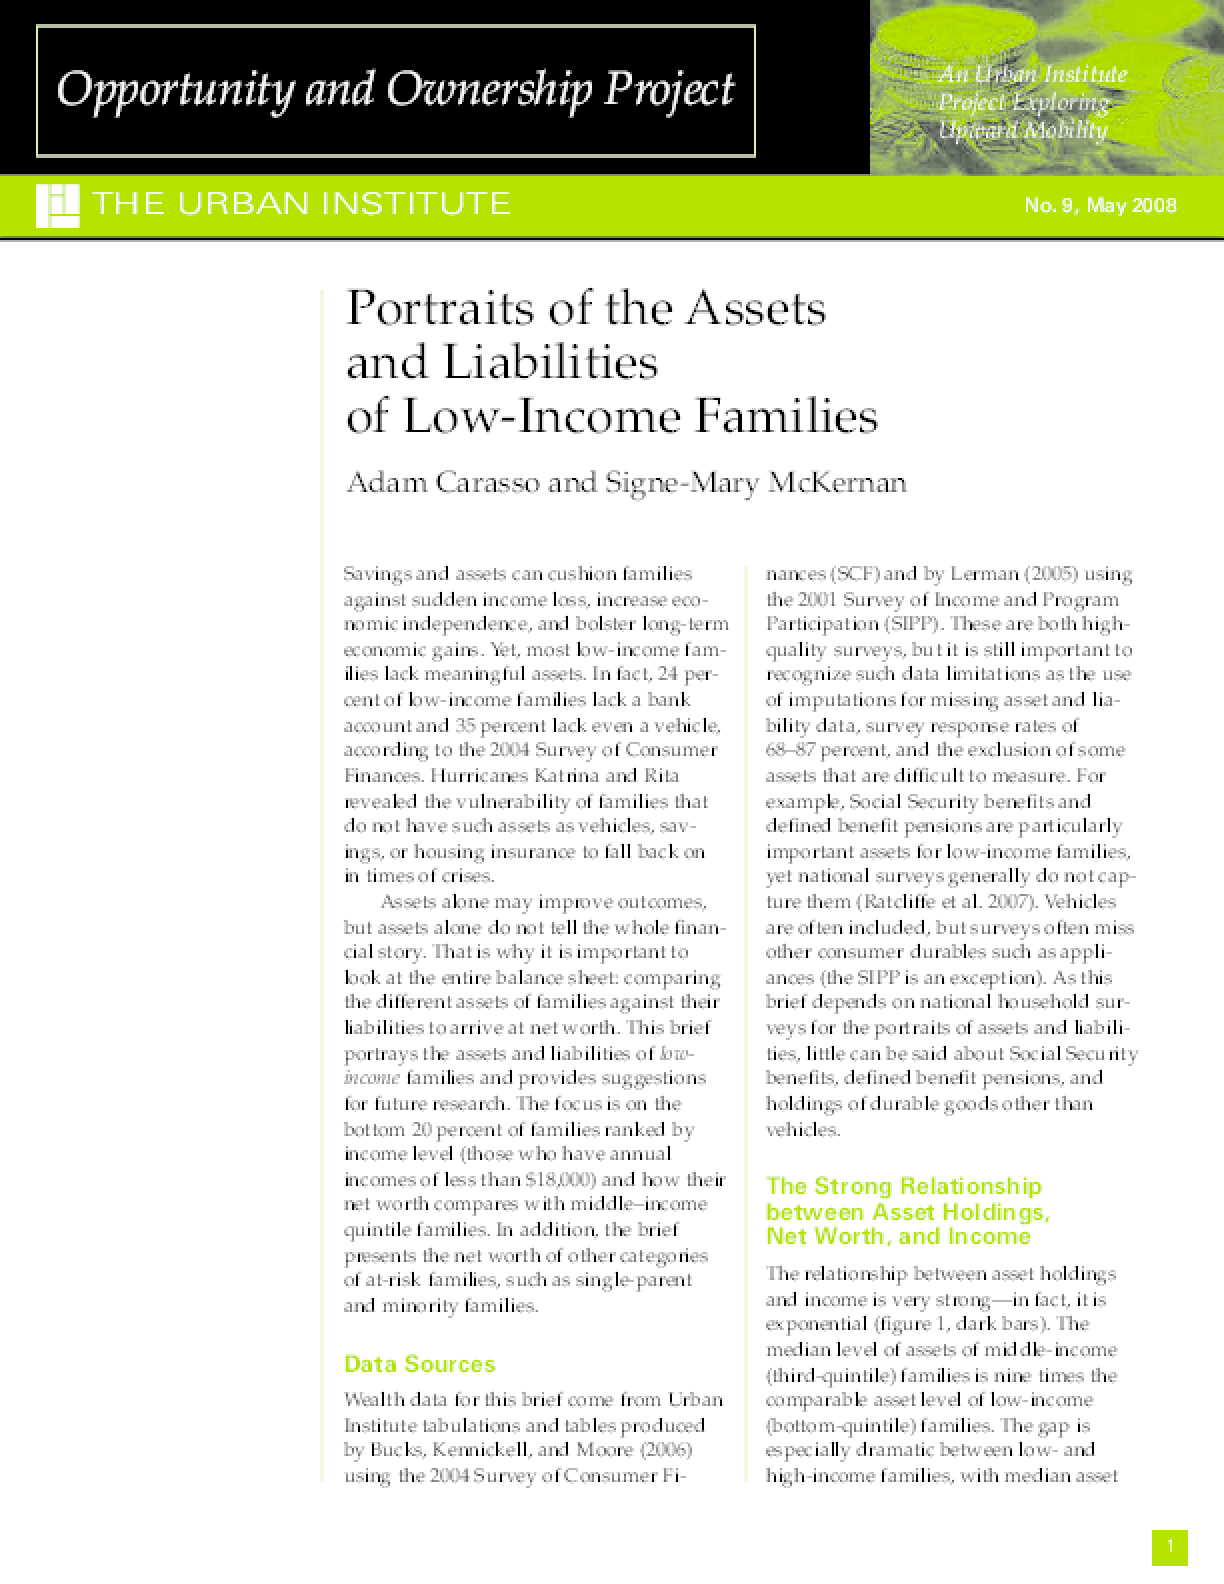 Portraits of the Assets and Liabilities of Low-Income Families